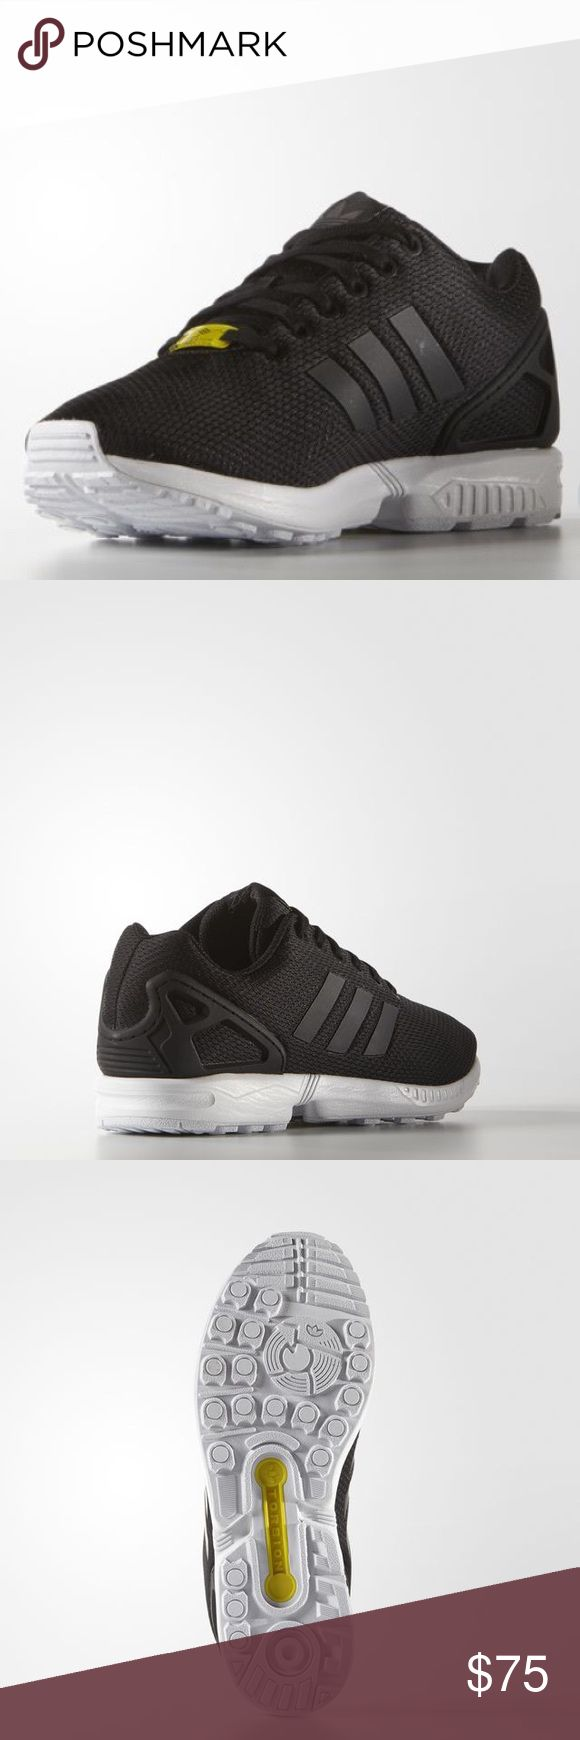 adidas ZX Flux Black White Men's size 13. New with box. Style M19840 adidas Shoes Sneakers